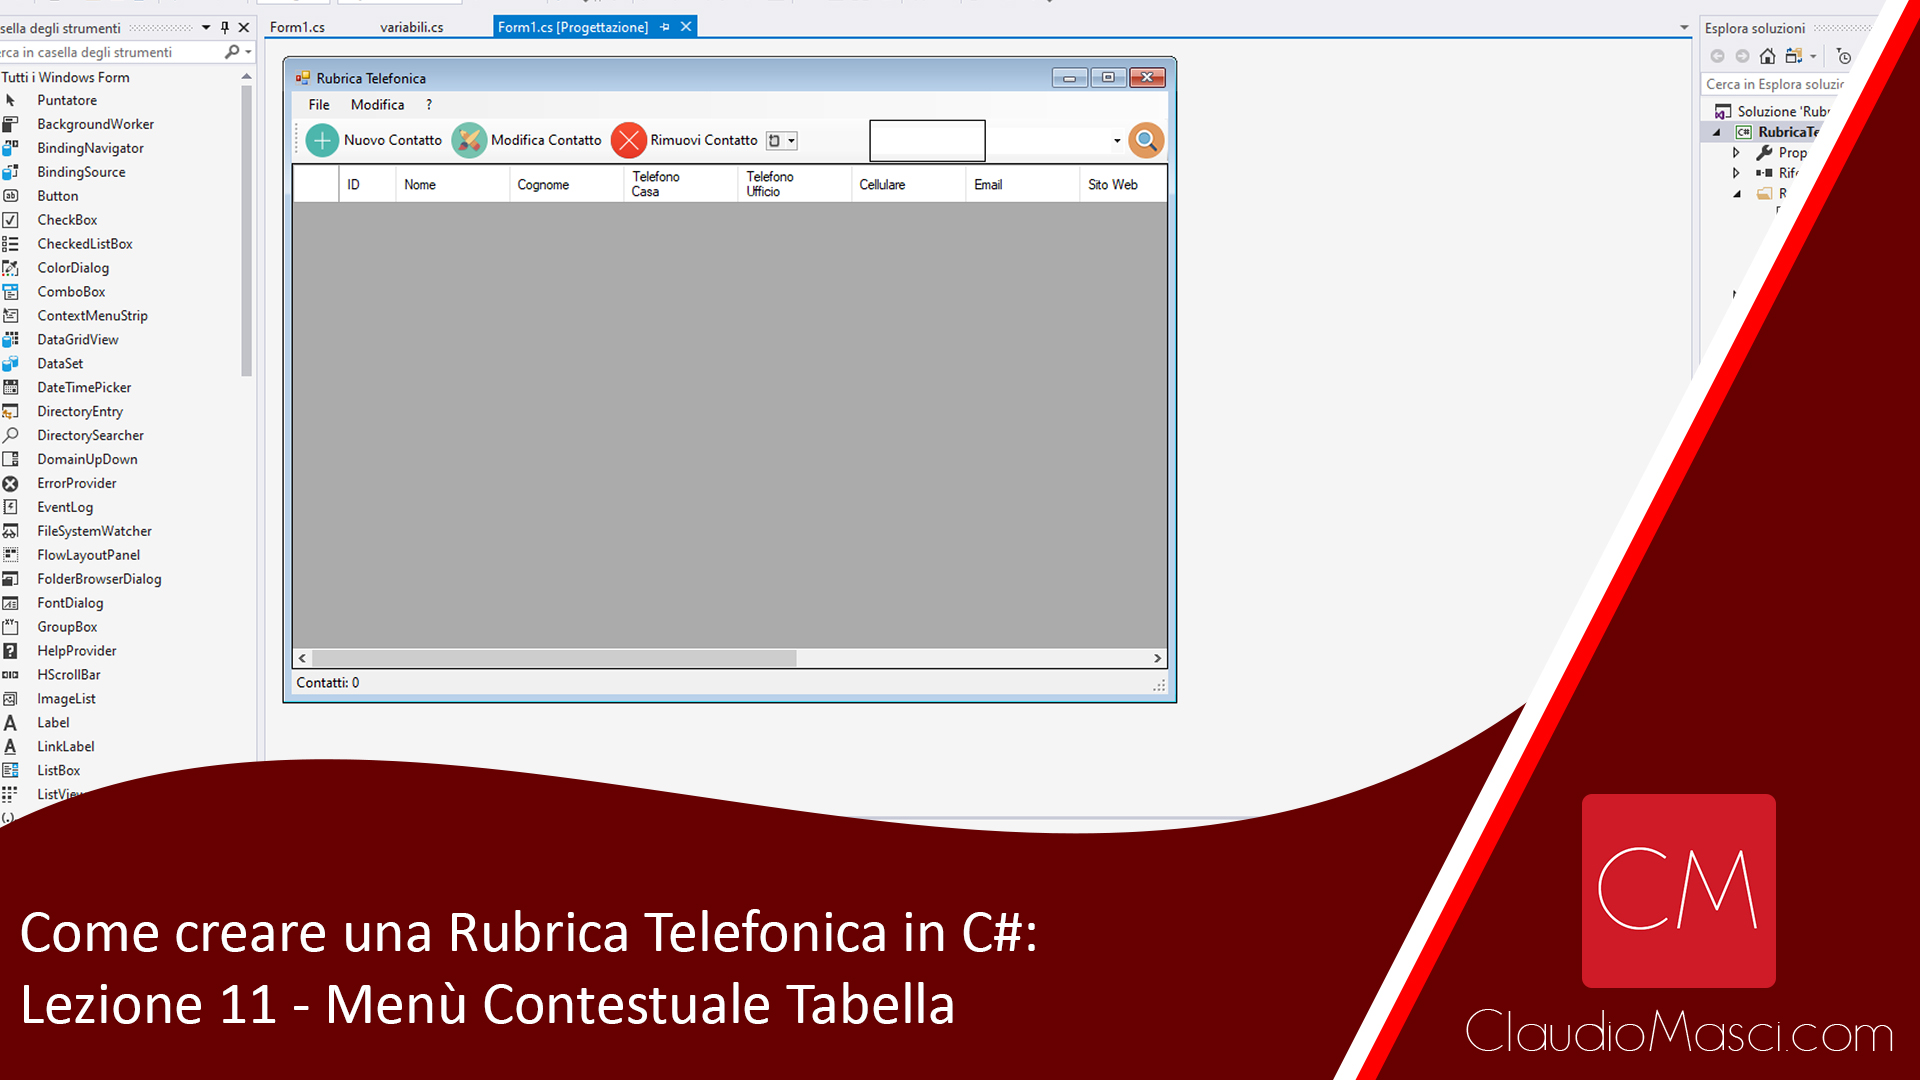 Come creare una Rubrica Telefonica in C# – Video 11: Menù Contestuale Tabella